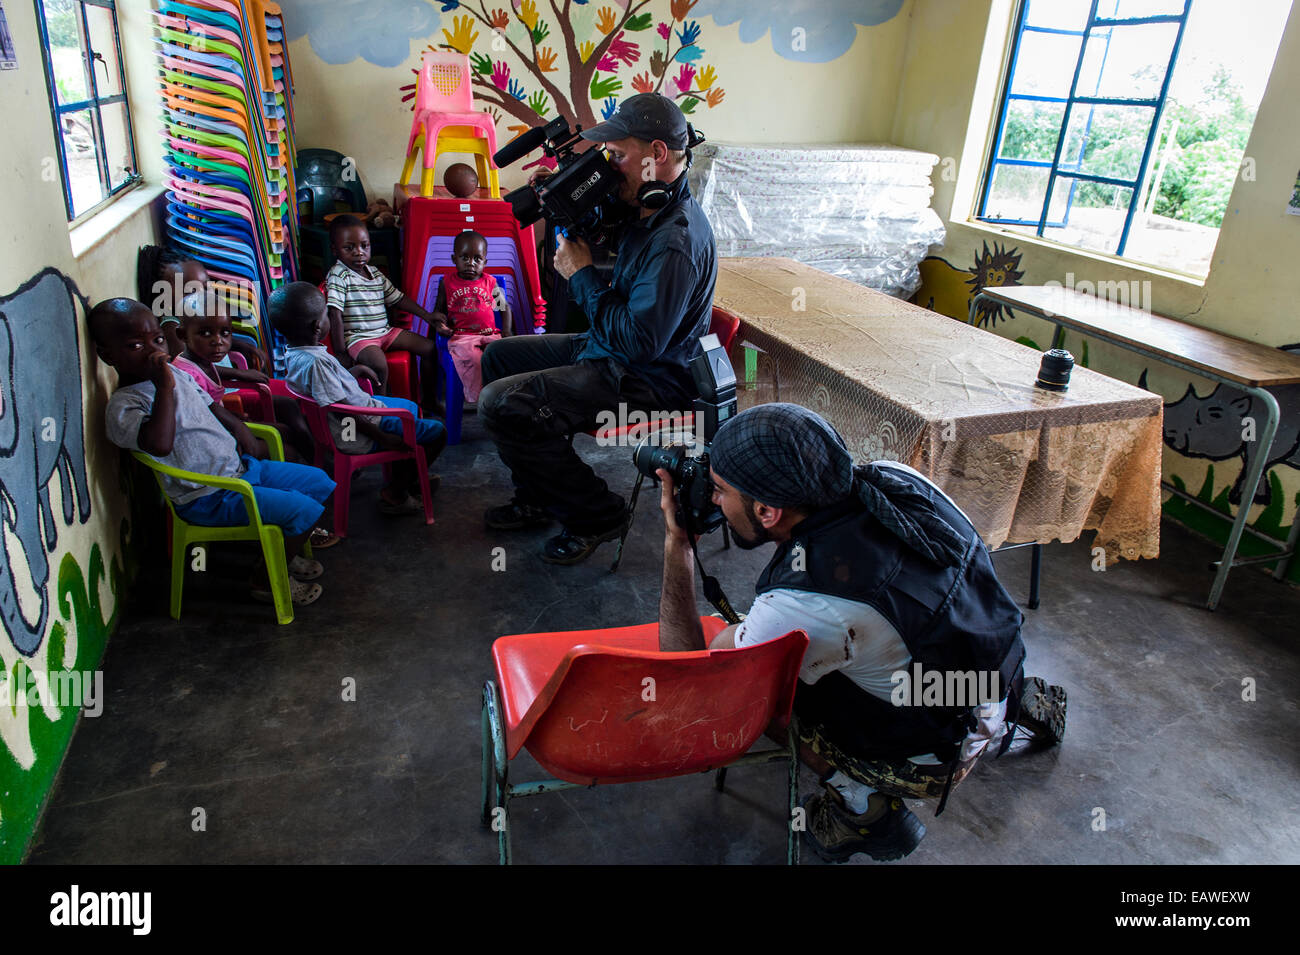 A film crew photographs children in a small African Primary school. - Stock Image